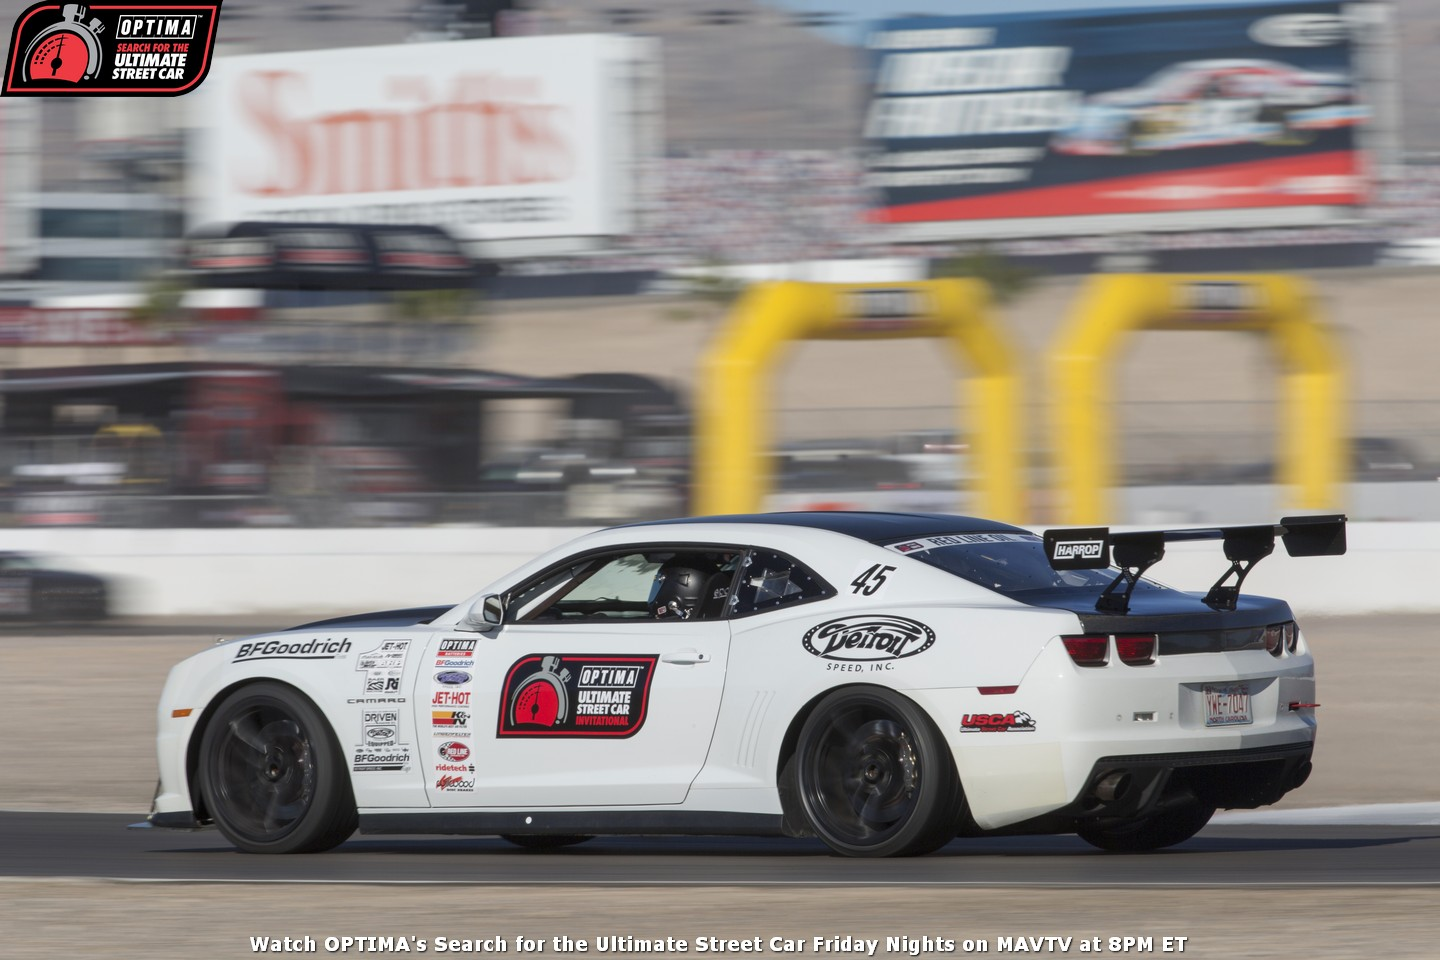 Ryan-Mathews-Chevrolet-Camaro-OPTIMA-Ultimate-Street-Car-Invitational-2014-BFGoodrich-Hot-Lap-Challenge_234.jpg